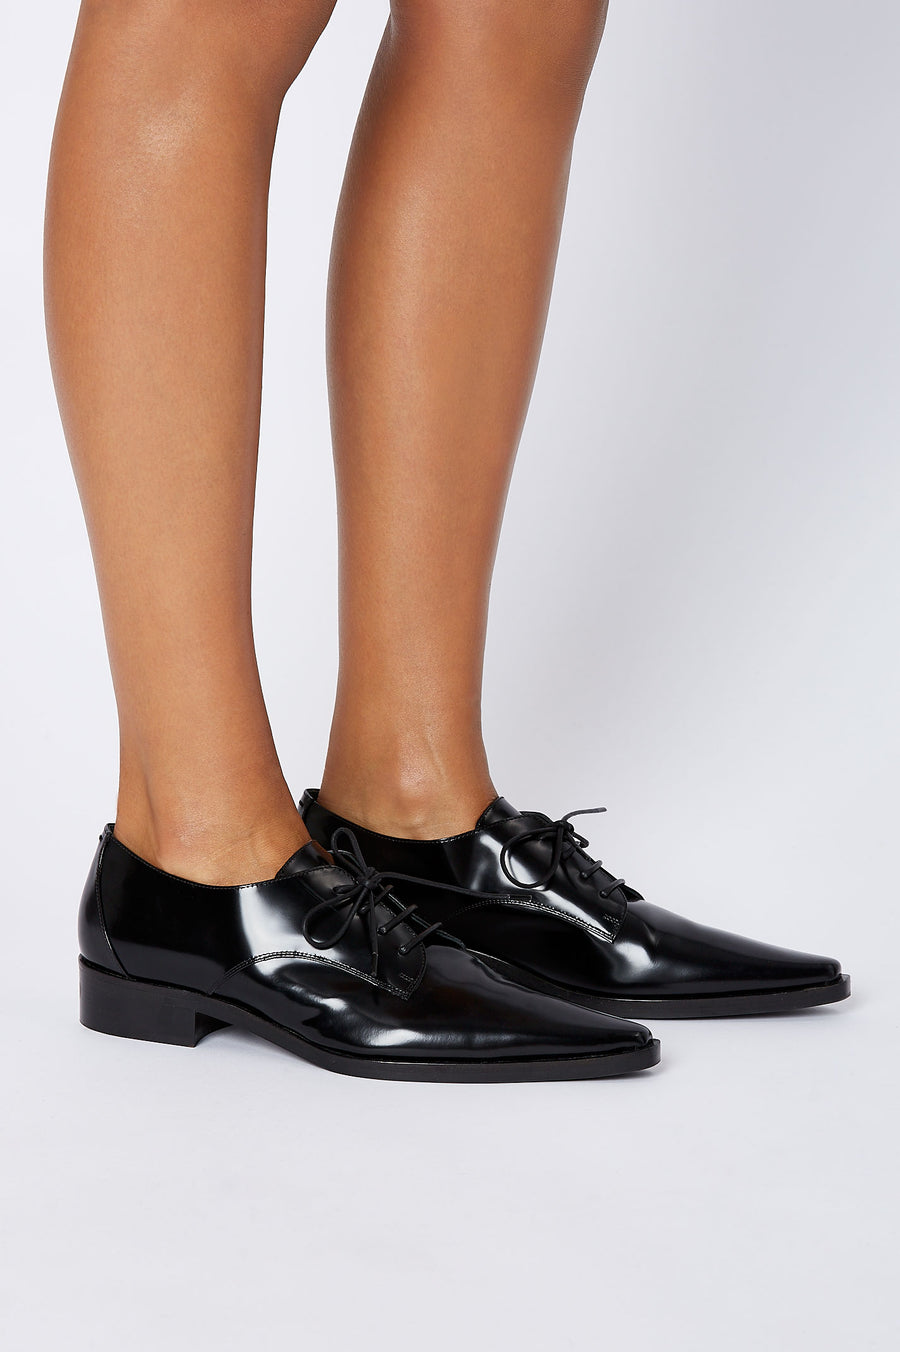 Revamp your off-duty footwear with our Leather Lace Up